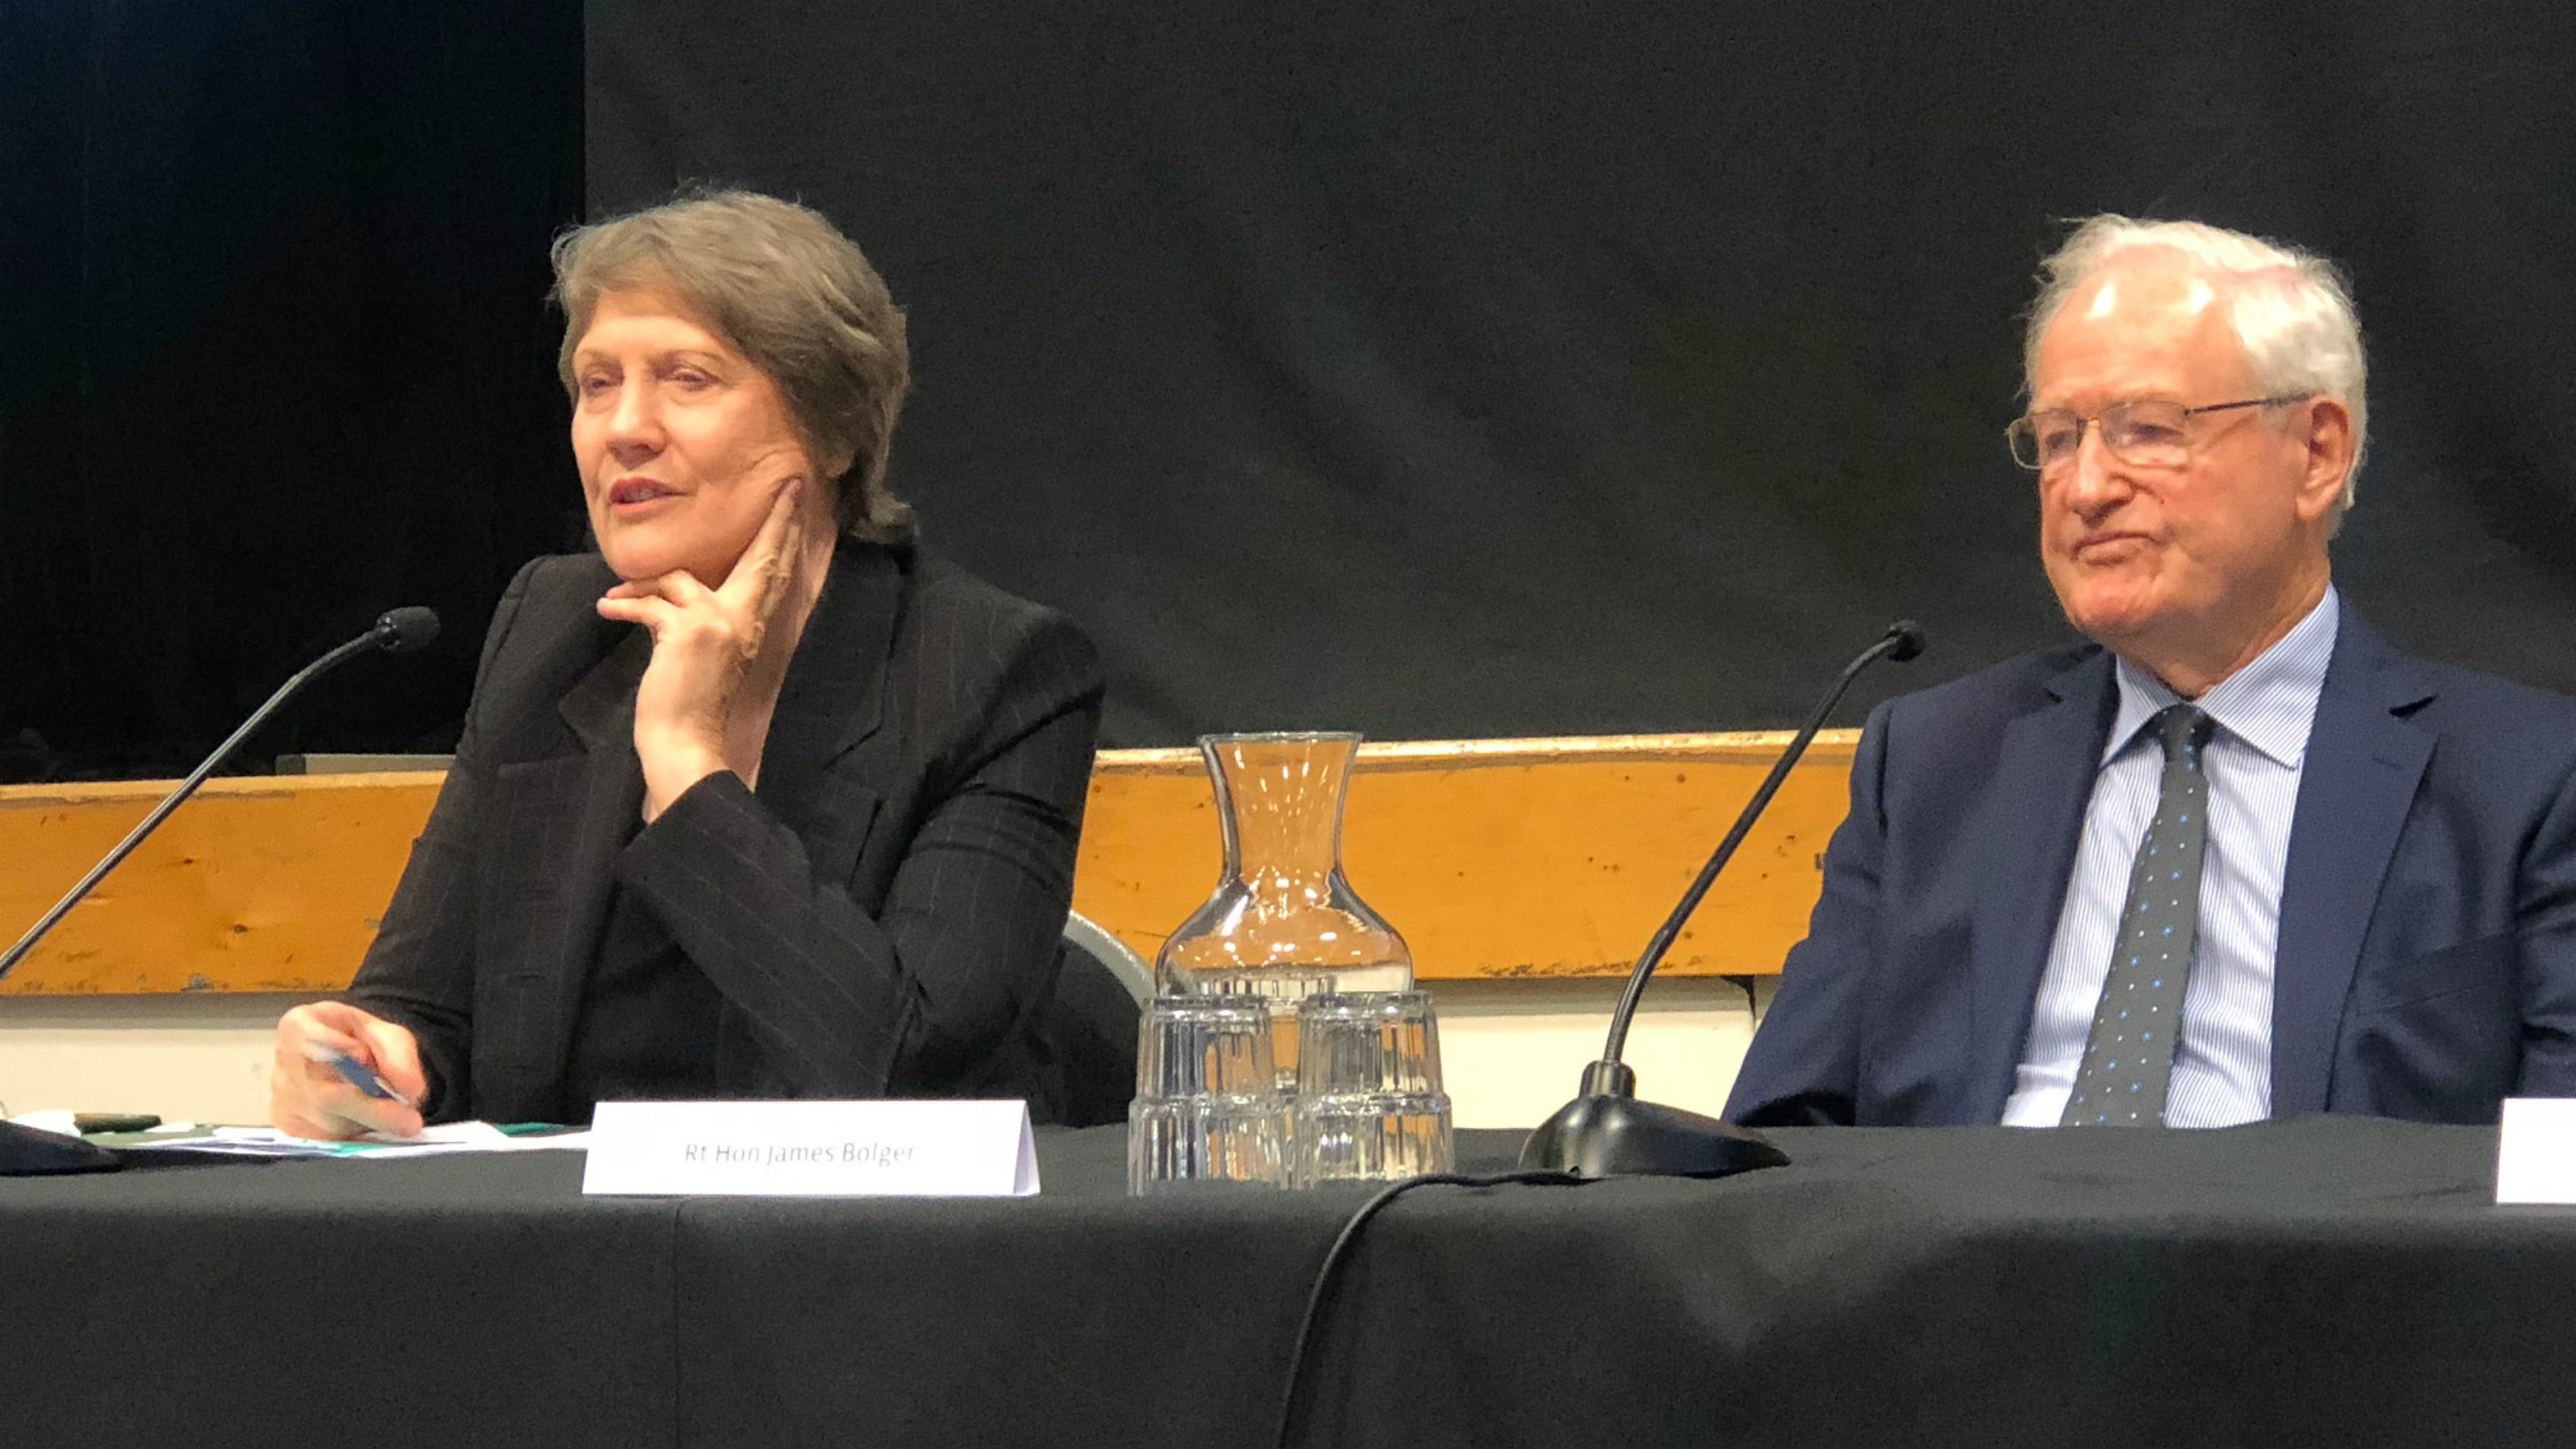 Helen Clark and Jim Bolger at MFAT conference